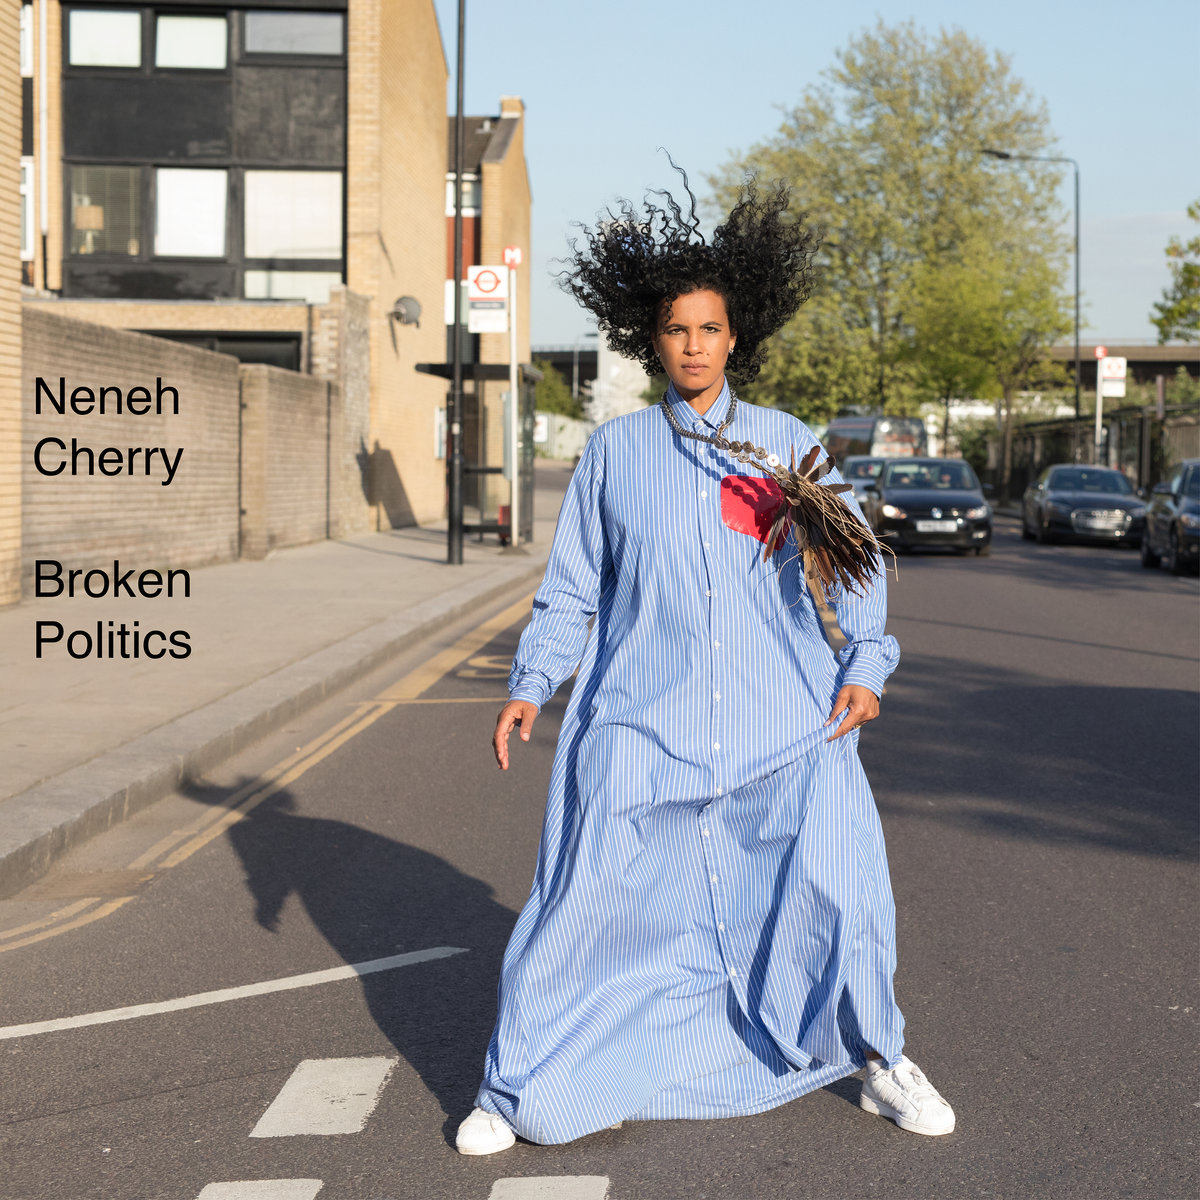 neneh cherry broken politics.jpg